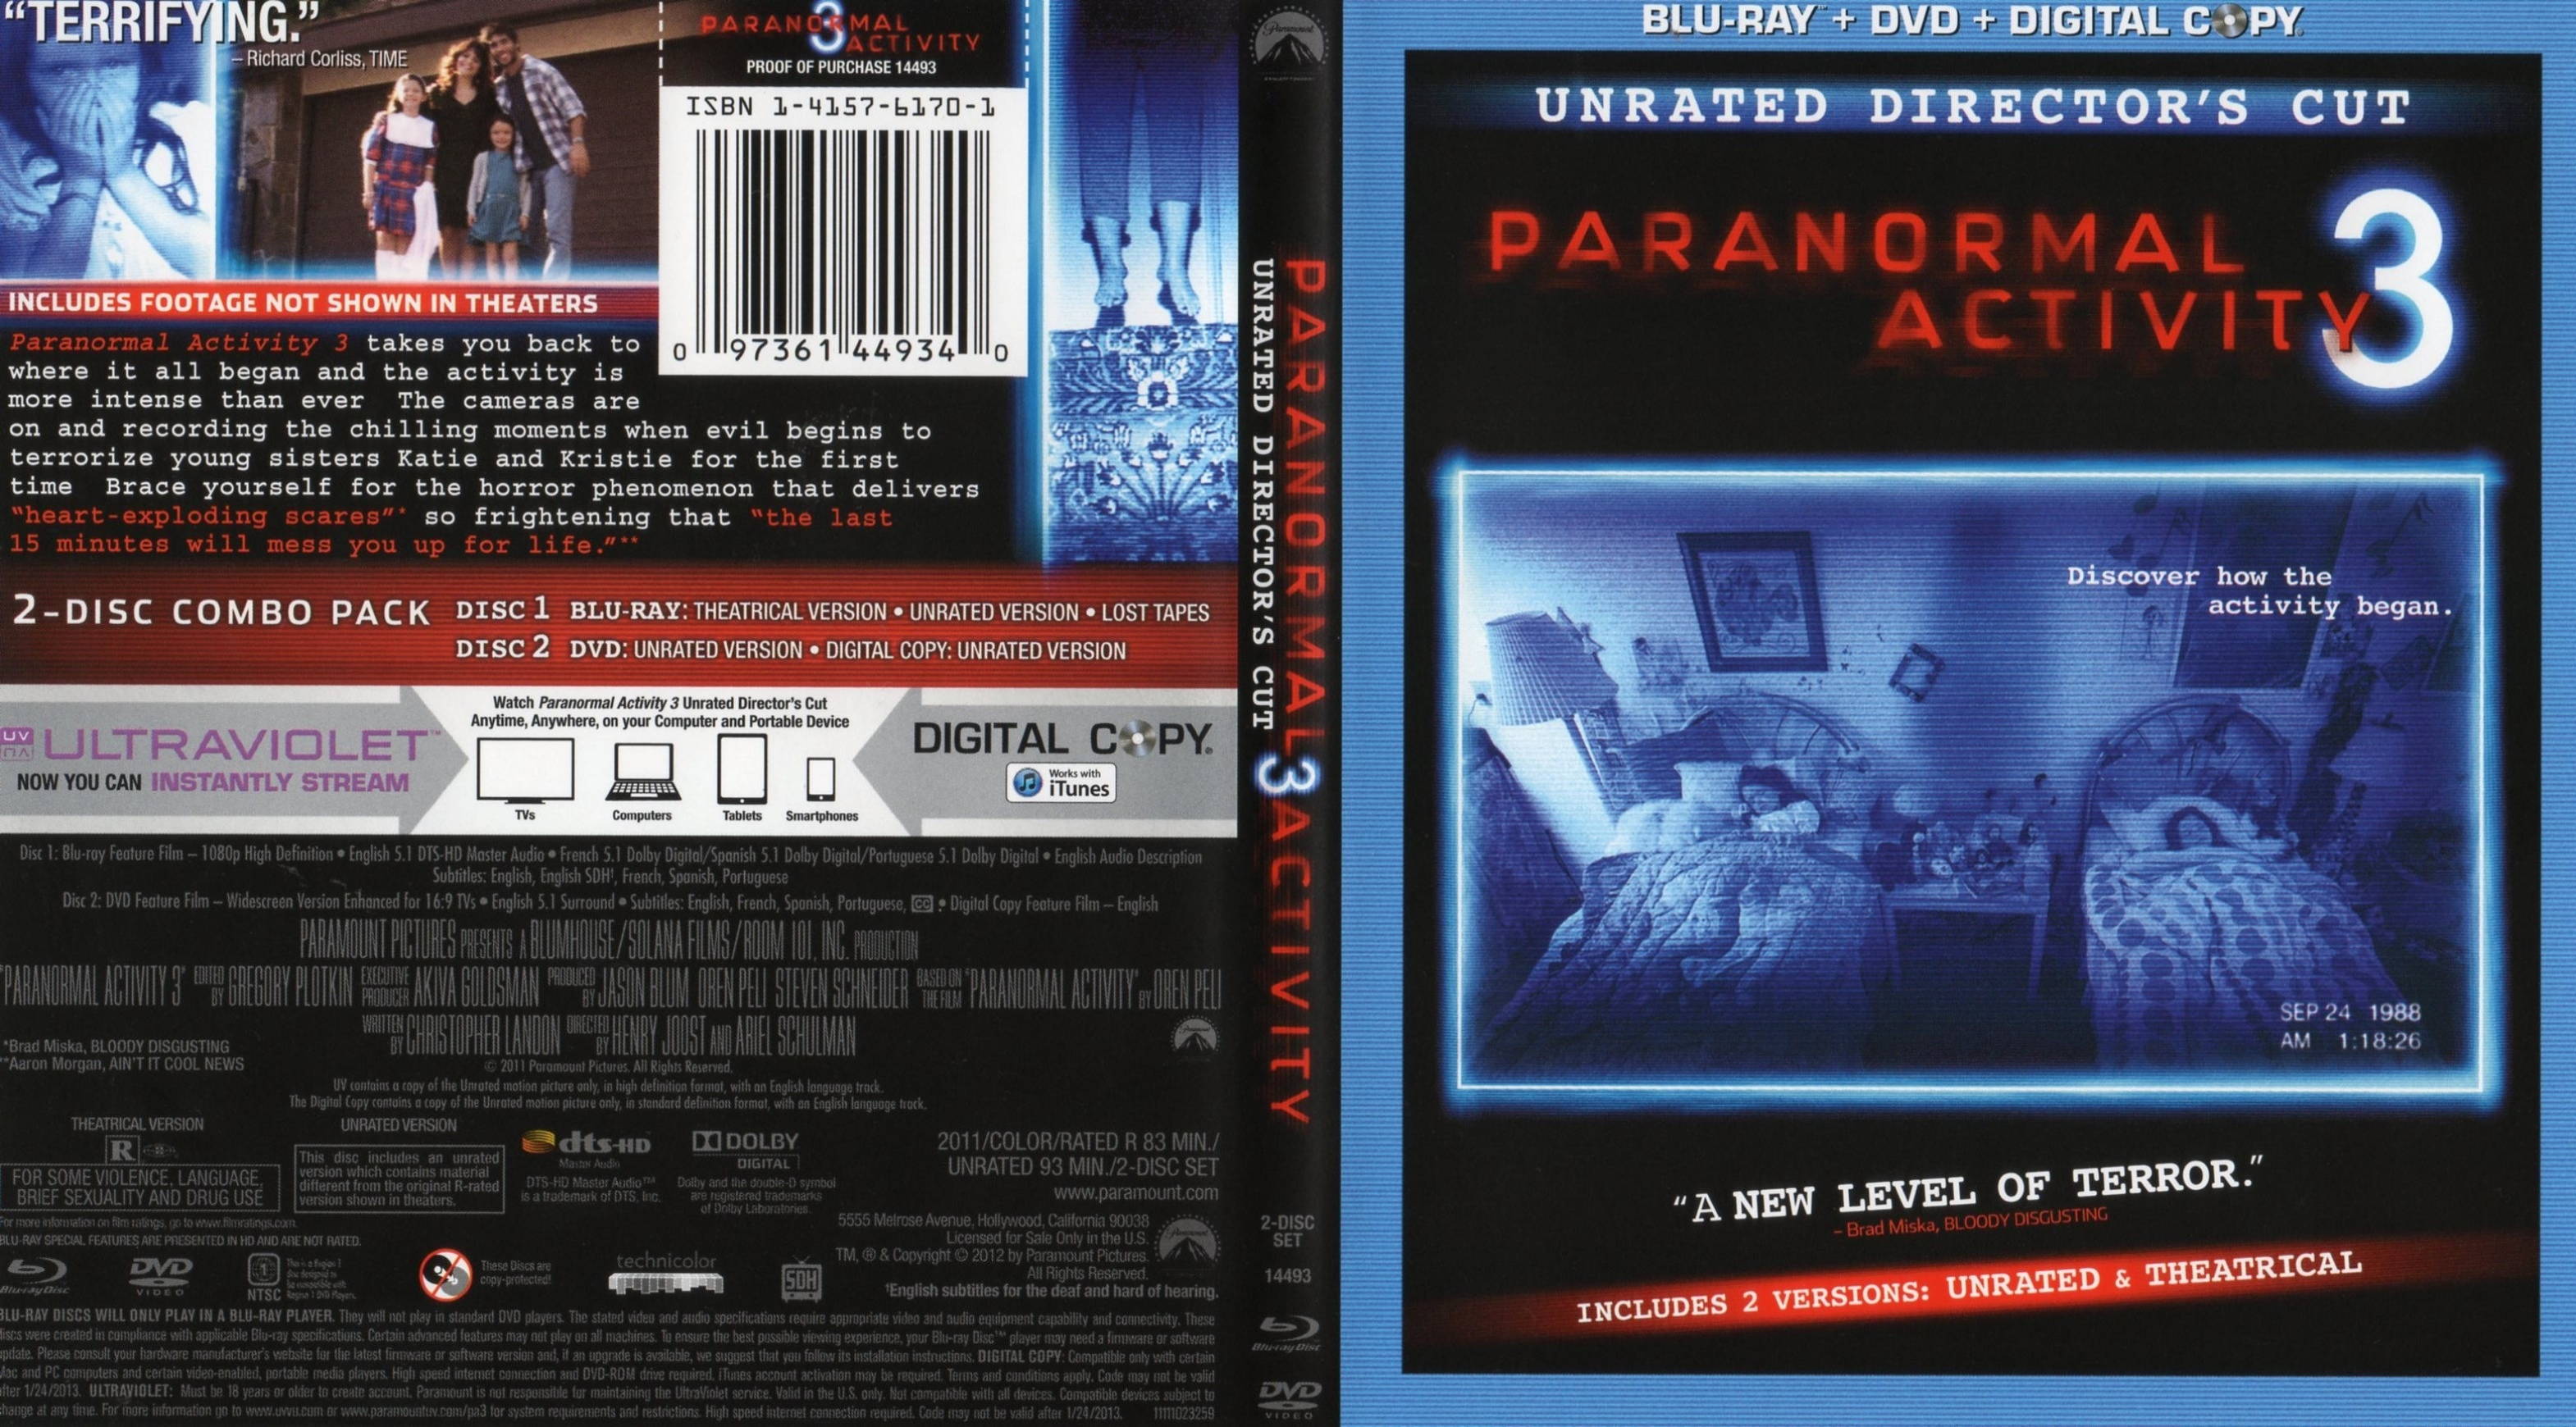 Covers Box Sk Paranormal Activity 3 2011 High Quality Dvd Blueray Movie